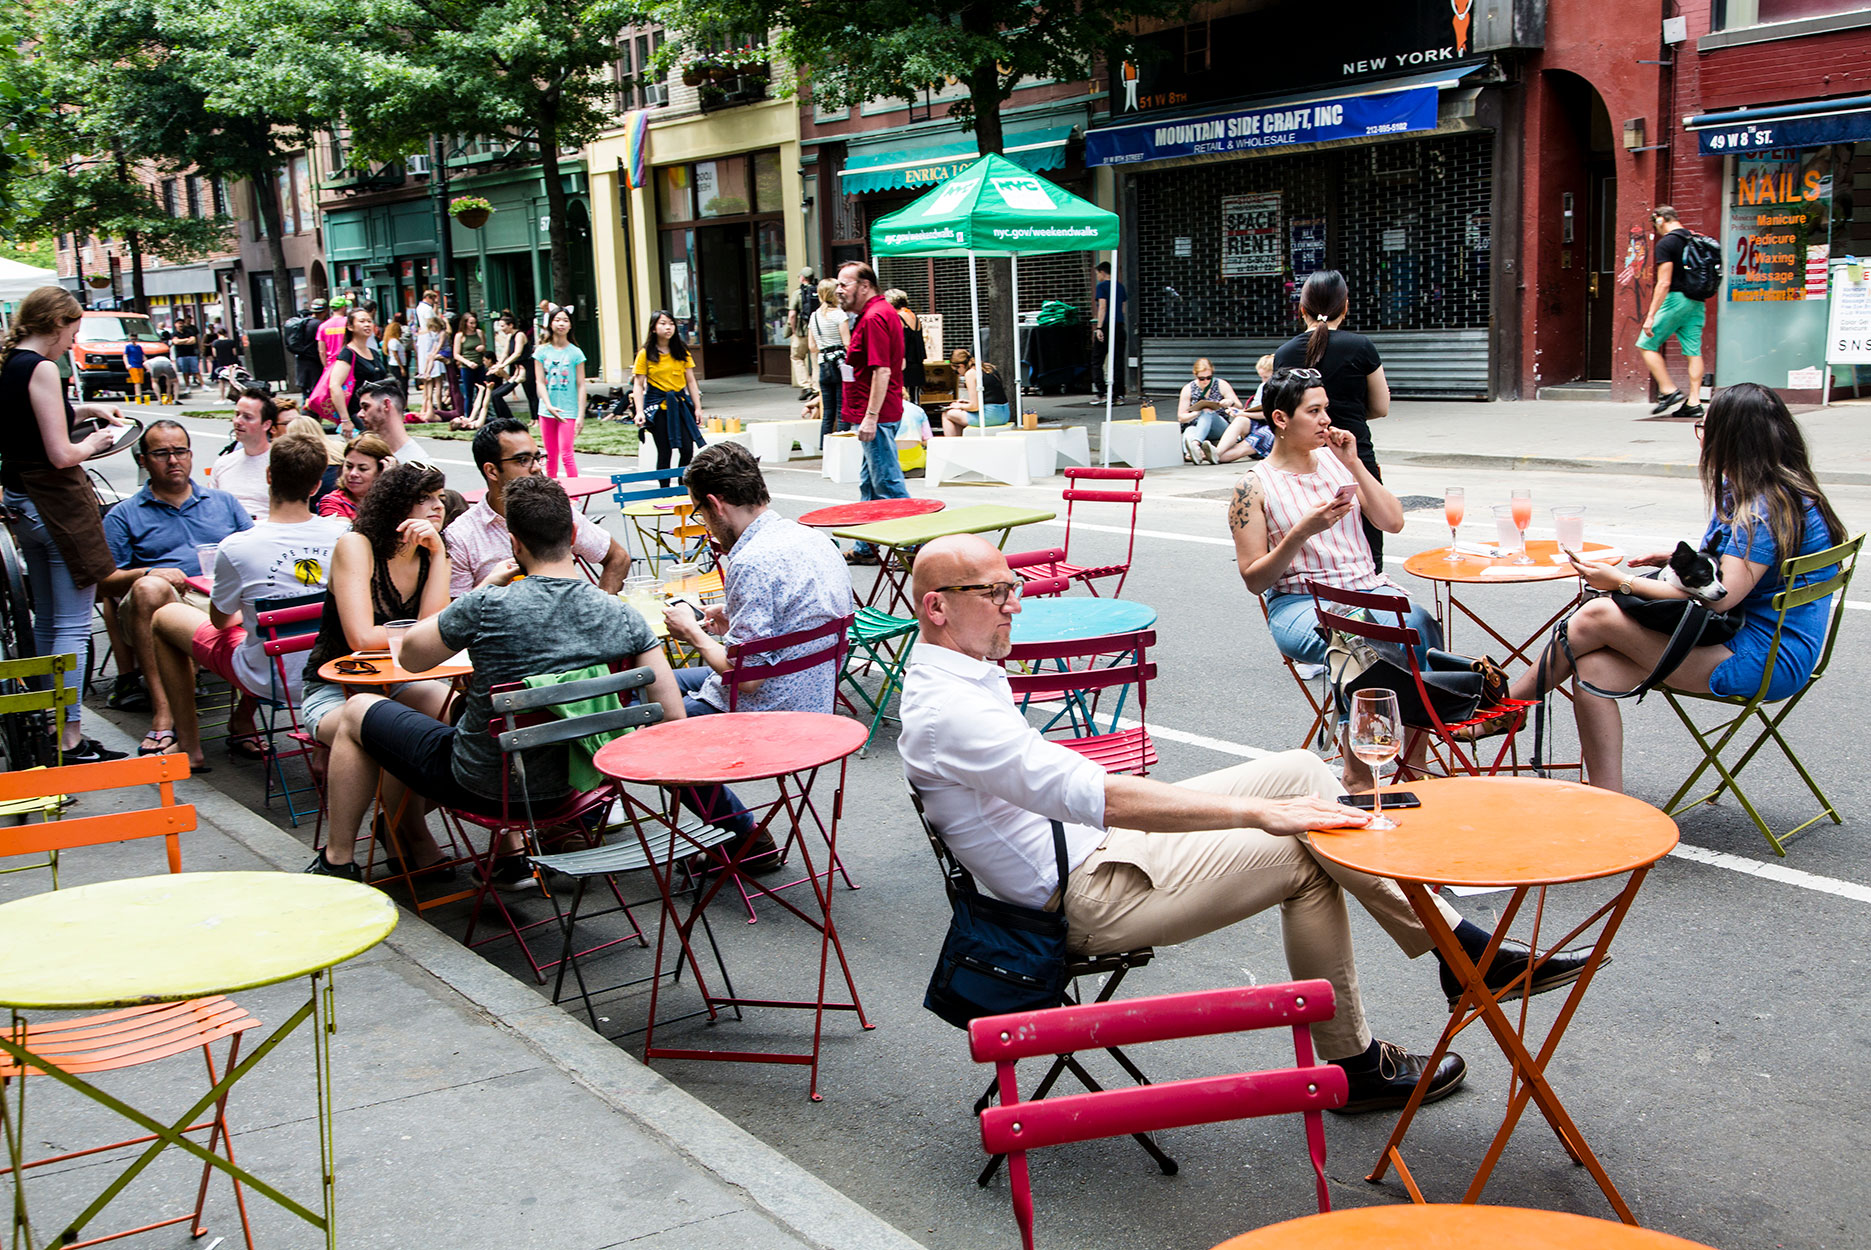 People drinking at outdoor bar, Greenwich Village, Manhattan, New York City, New York, United States